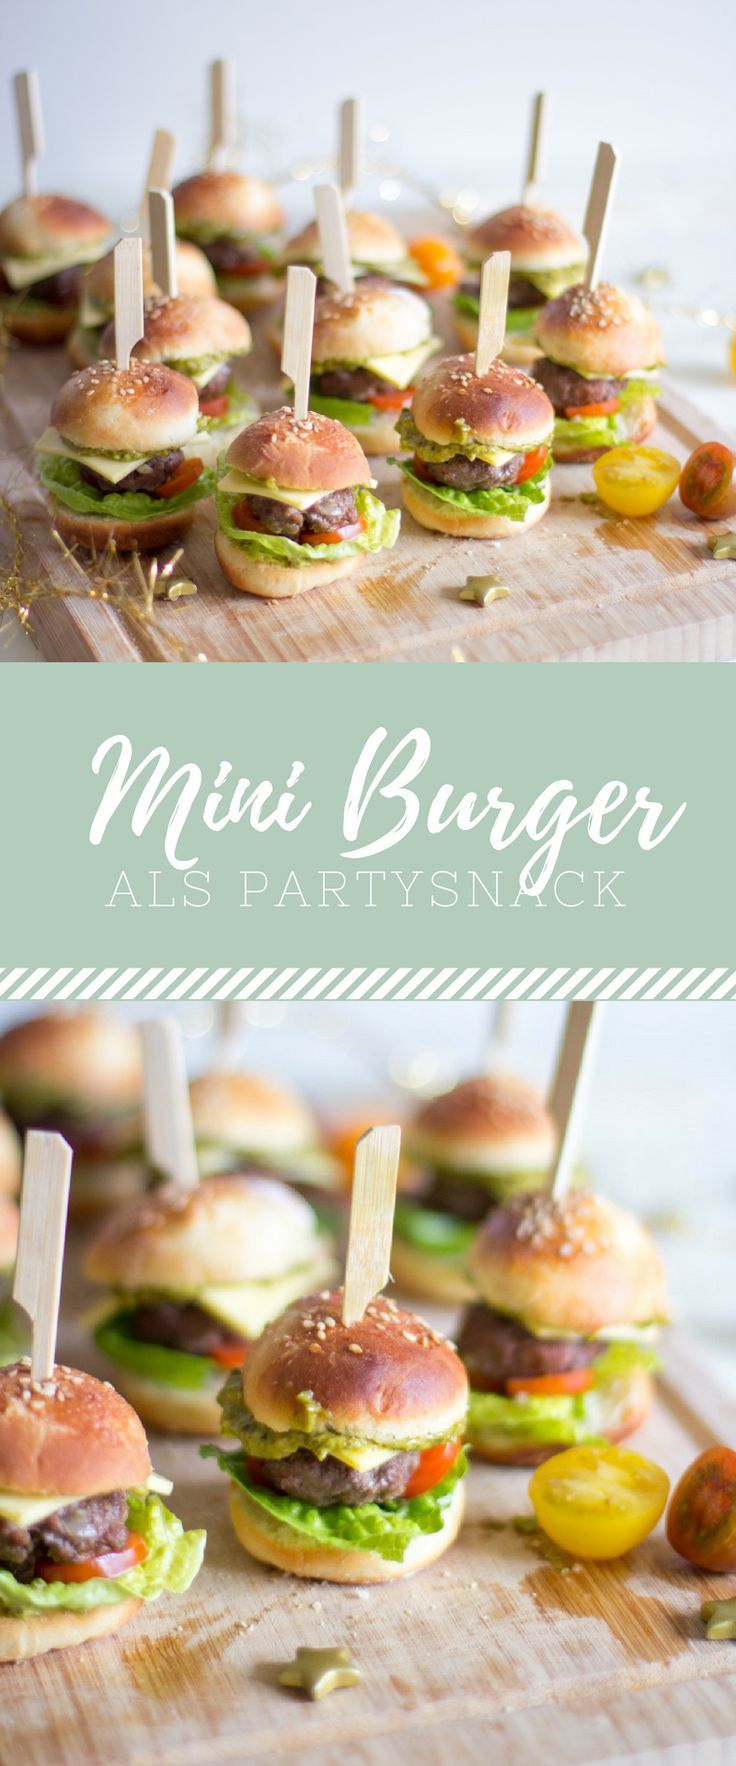 Photo of Den perfekte fest snack! Miniburger